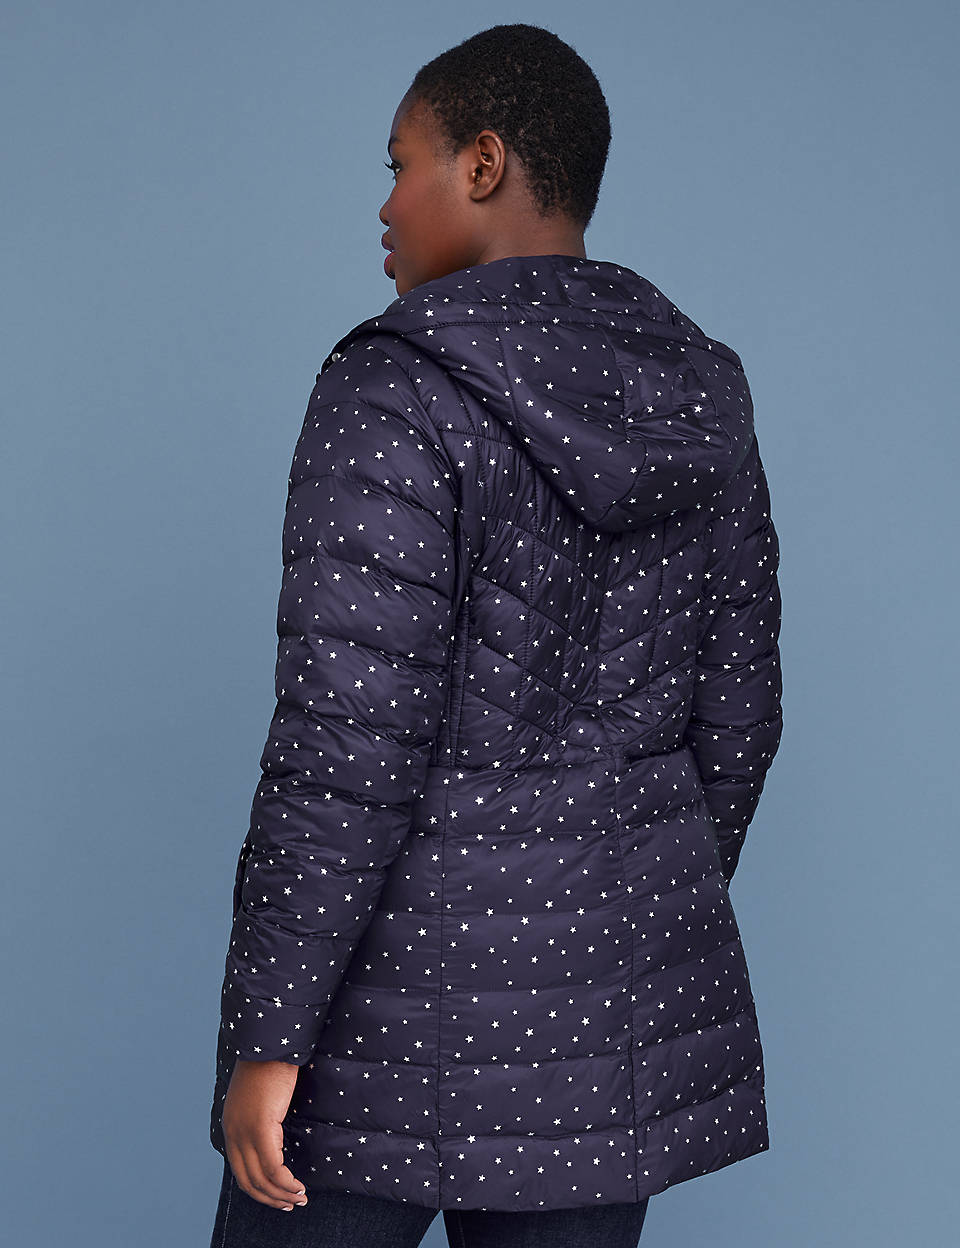 94e18e13aa0 Midi Packable Puffer Jacket with Thermoplume Technology - Night Sky.   189.95  93.98. BUY 1 GET 1 FOR 75% OFF CLEARANCE SELECT FINAL SALE. 1